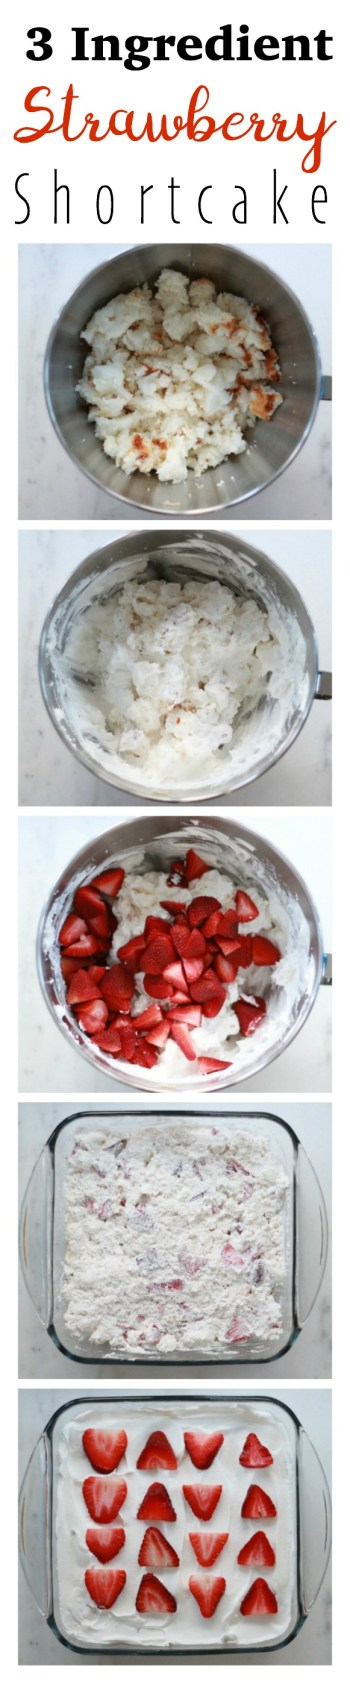 This strawberry shortcake recipe with angel food cake calls for three ingredients and is absolutely crowd pleasing! Not only does it only take a few short minutes to throw together, but it's delicious. You can also make it ahead of time. I sincerely hope you enjoy this recipe! Find full recipe at the bottom of this post.